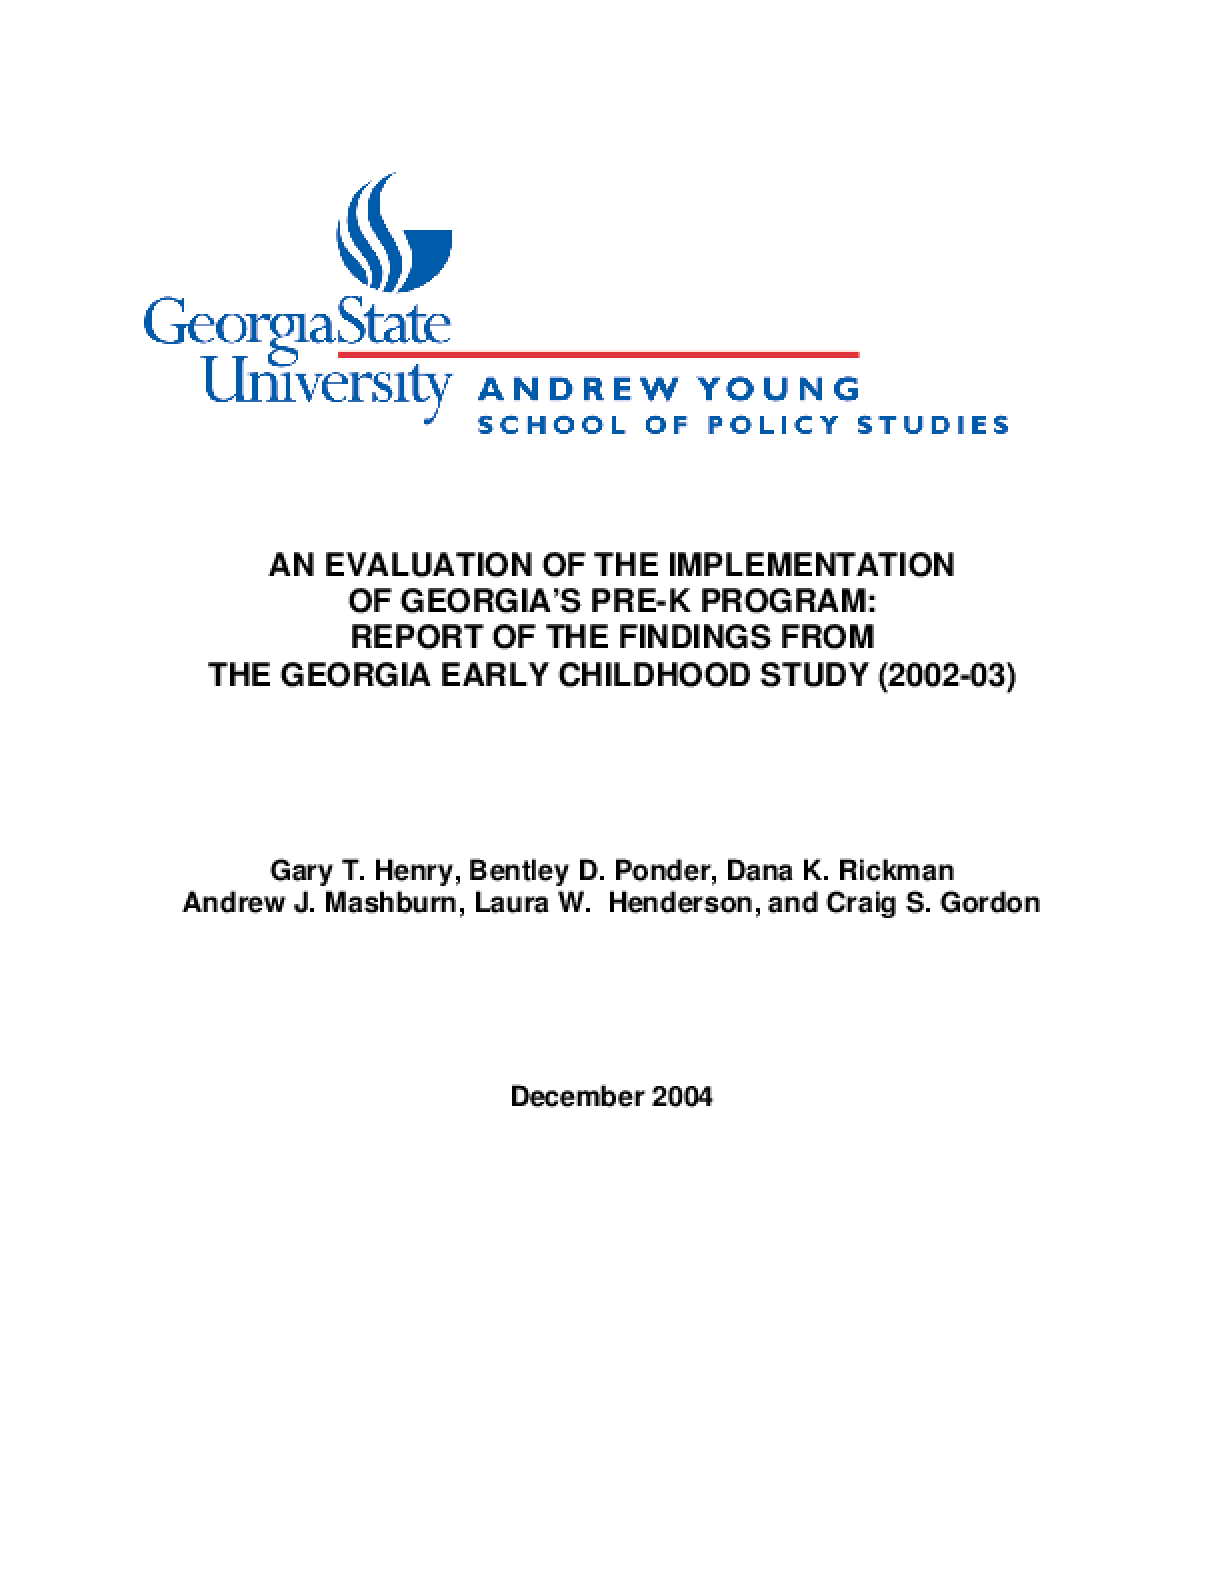 An evaluation of the implementation of Georgia's Pre-k program: Report of the findings from the Georgia Early Childhood Study (2002-03)